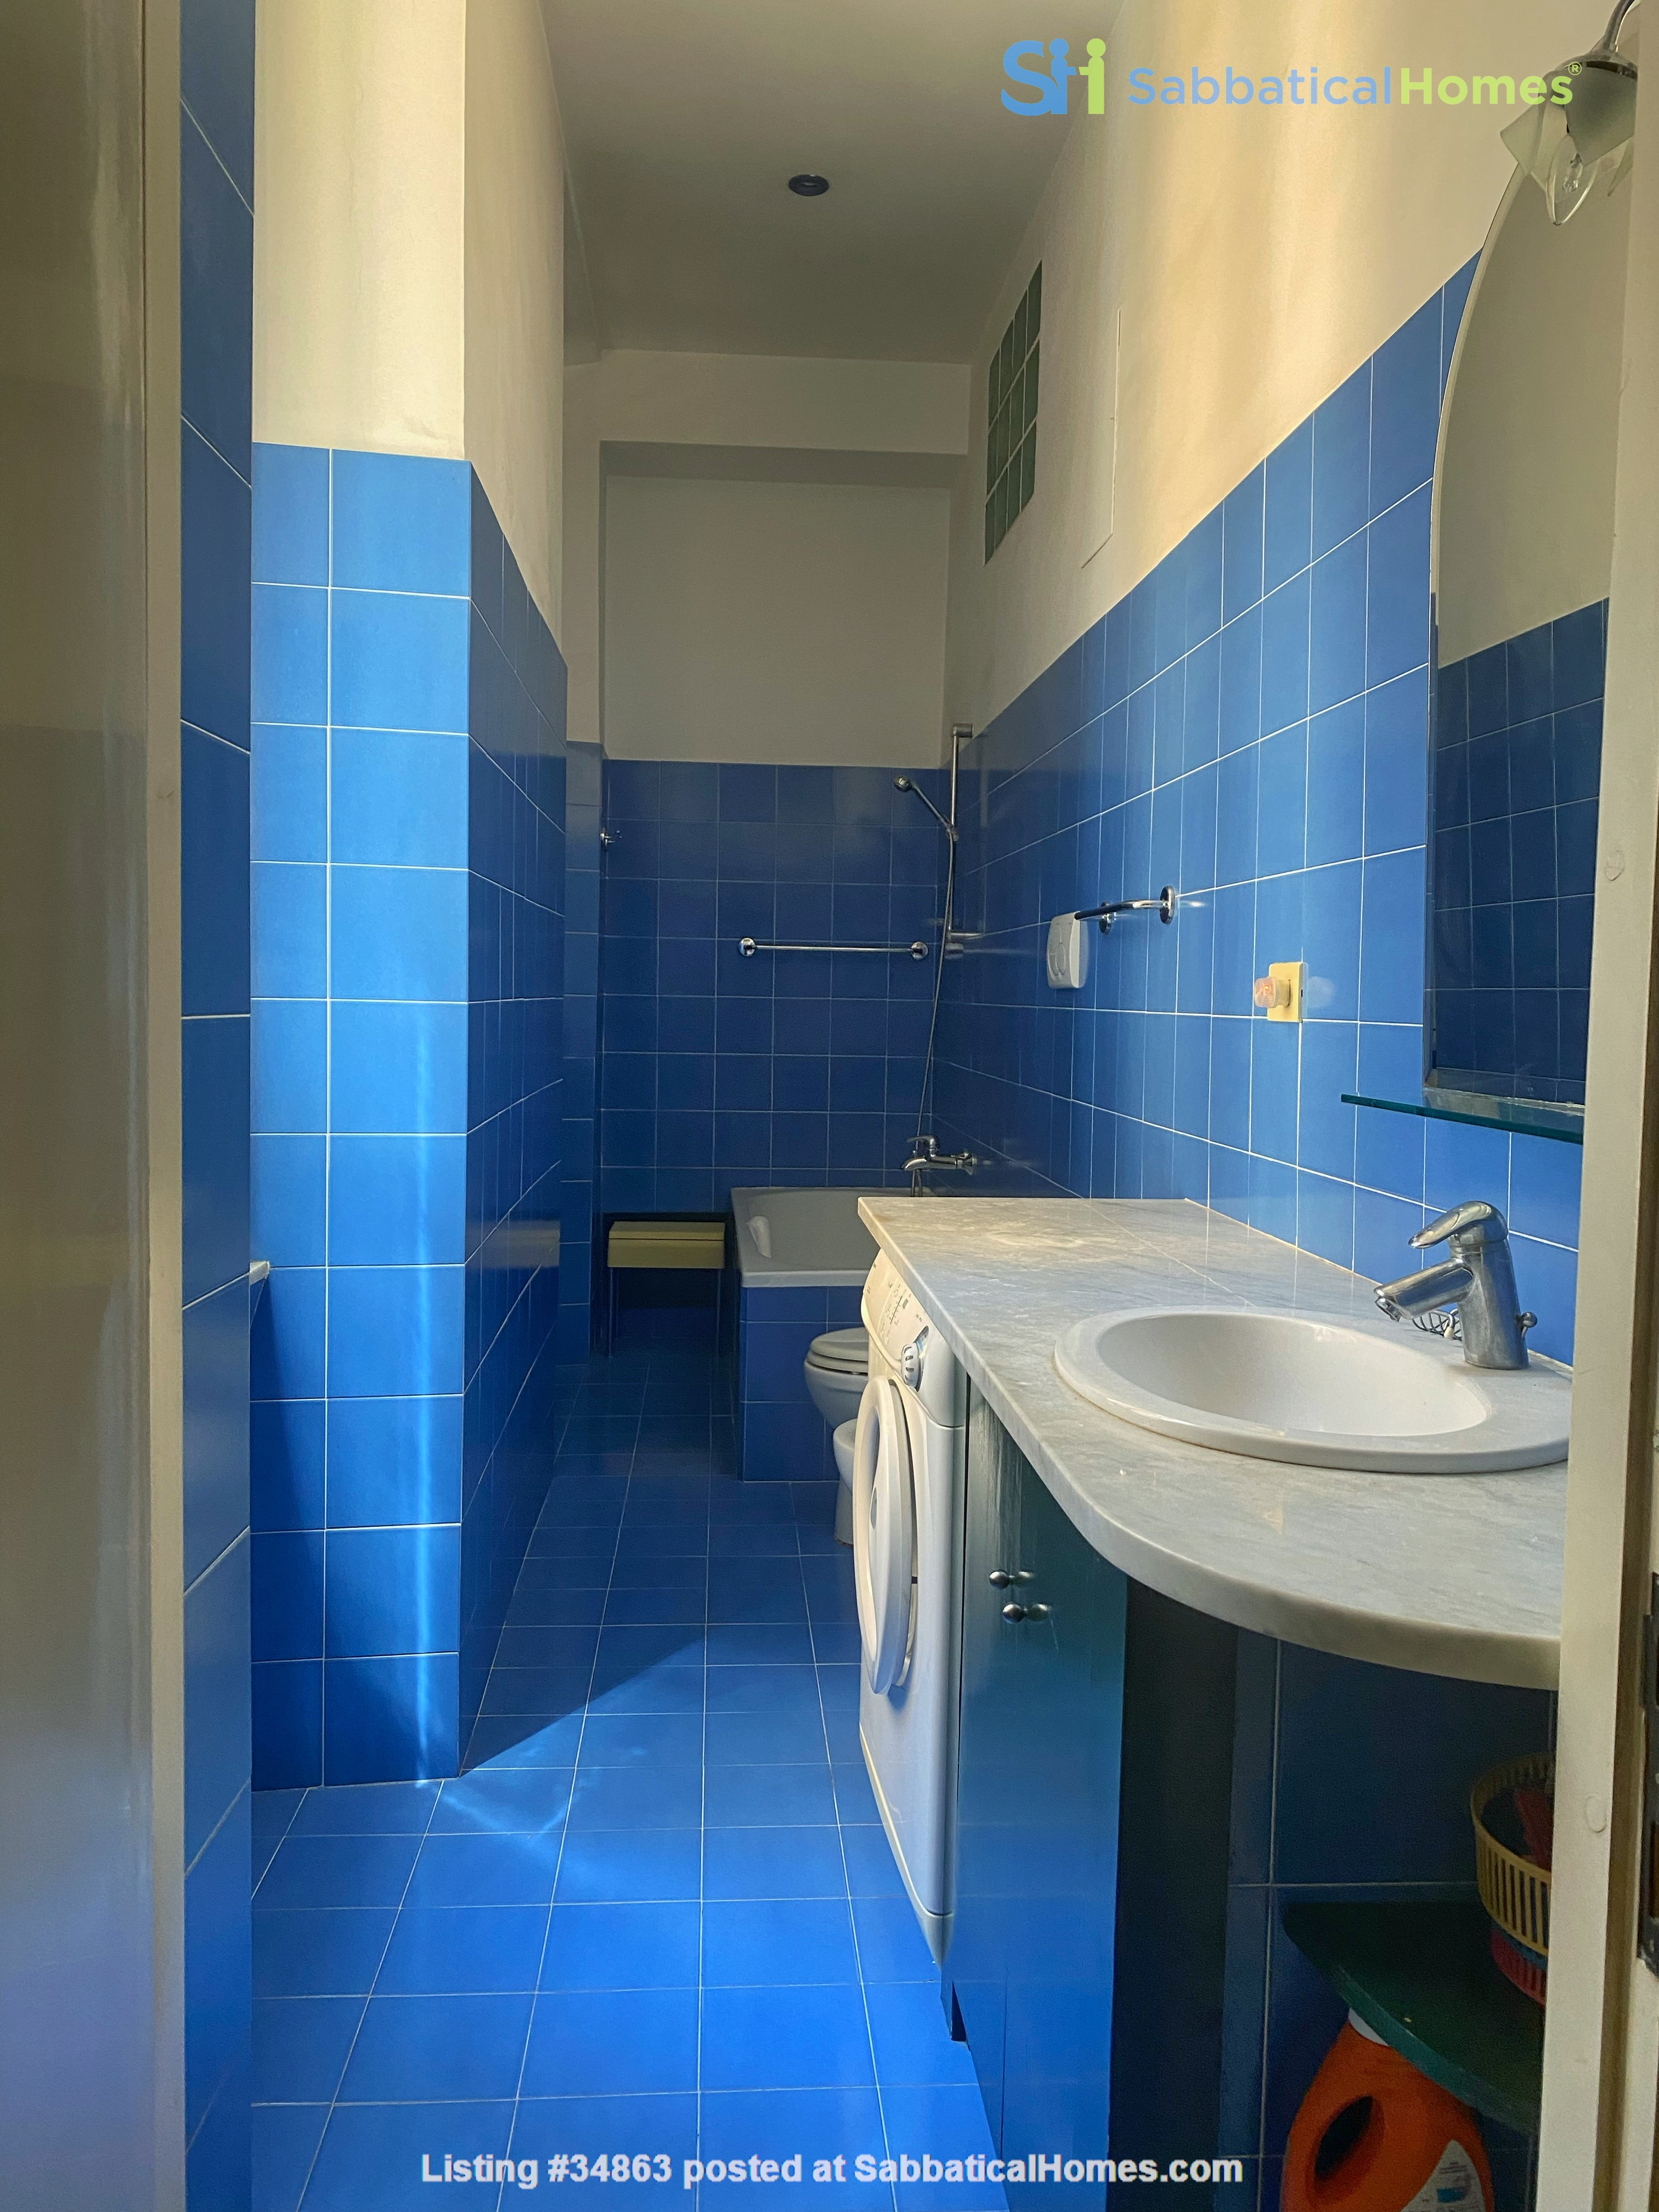 2 BR, 2 BA, spacious and comfortable apartment in Rome, Trastevere Home Rental in Rome 7